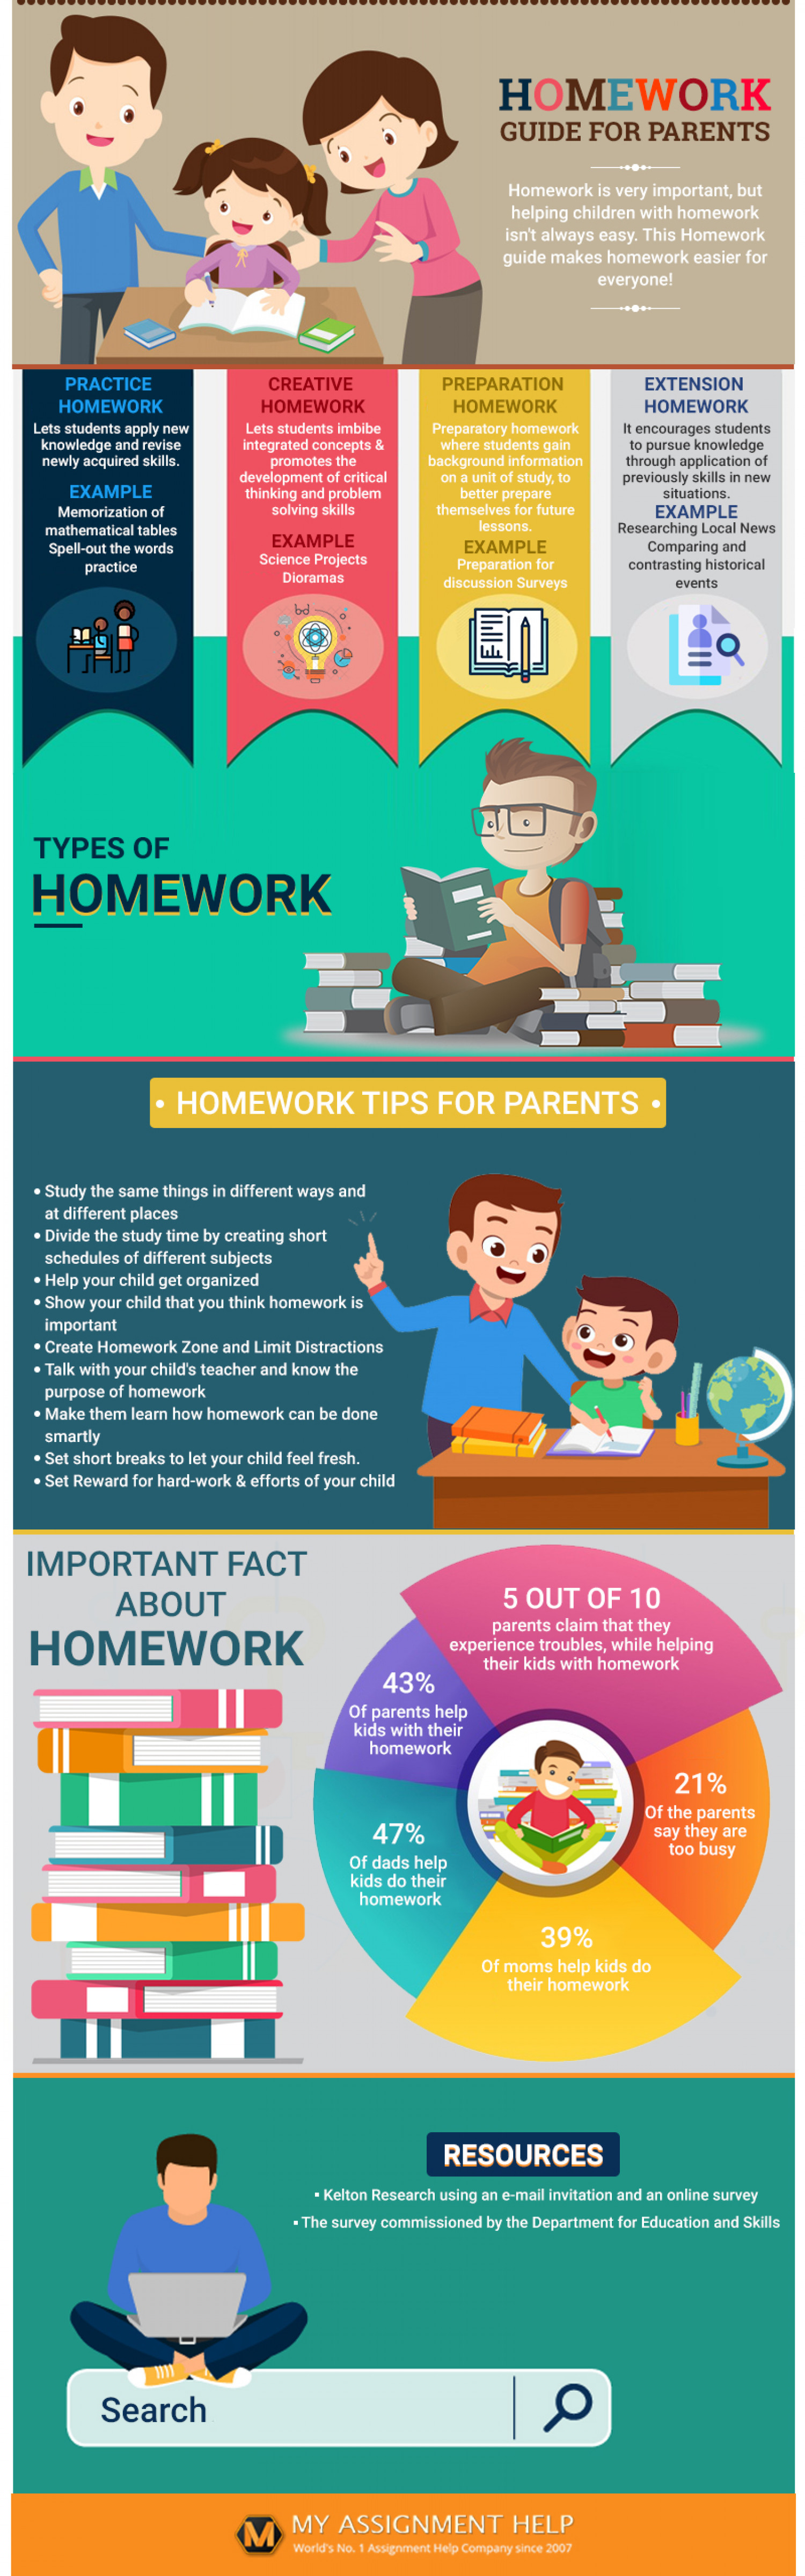 Homework Guide for Parents - Homework Tips for Parents Infographic